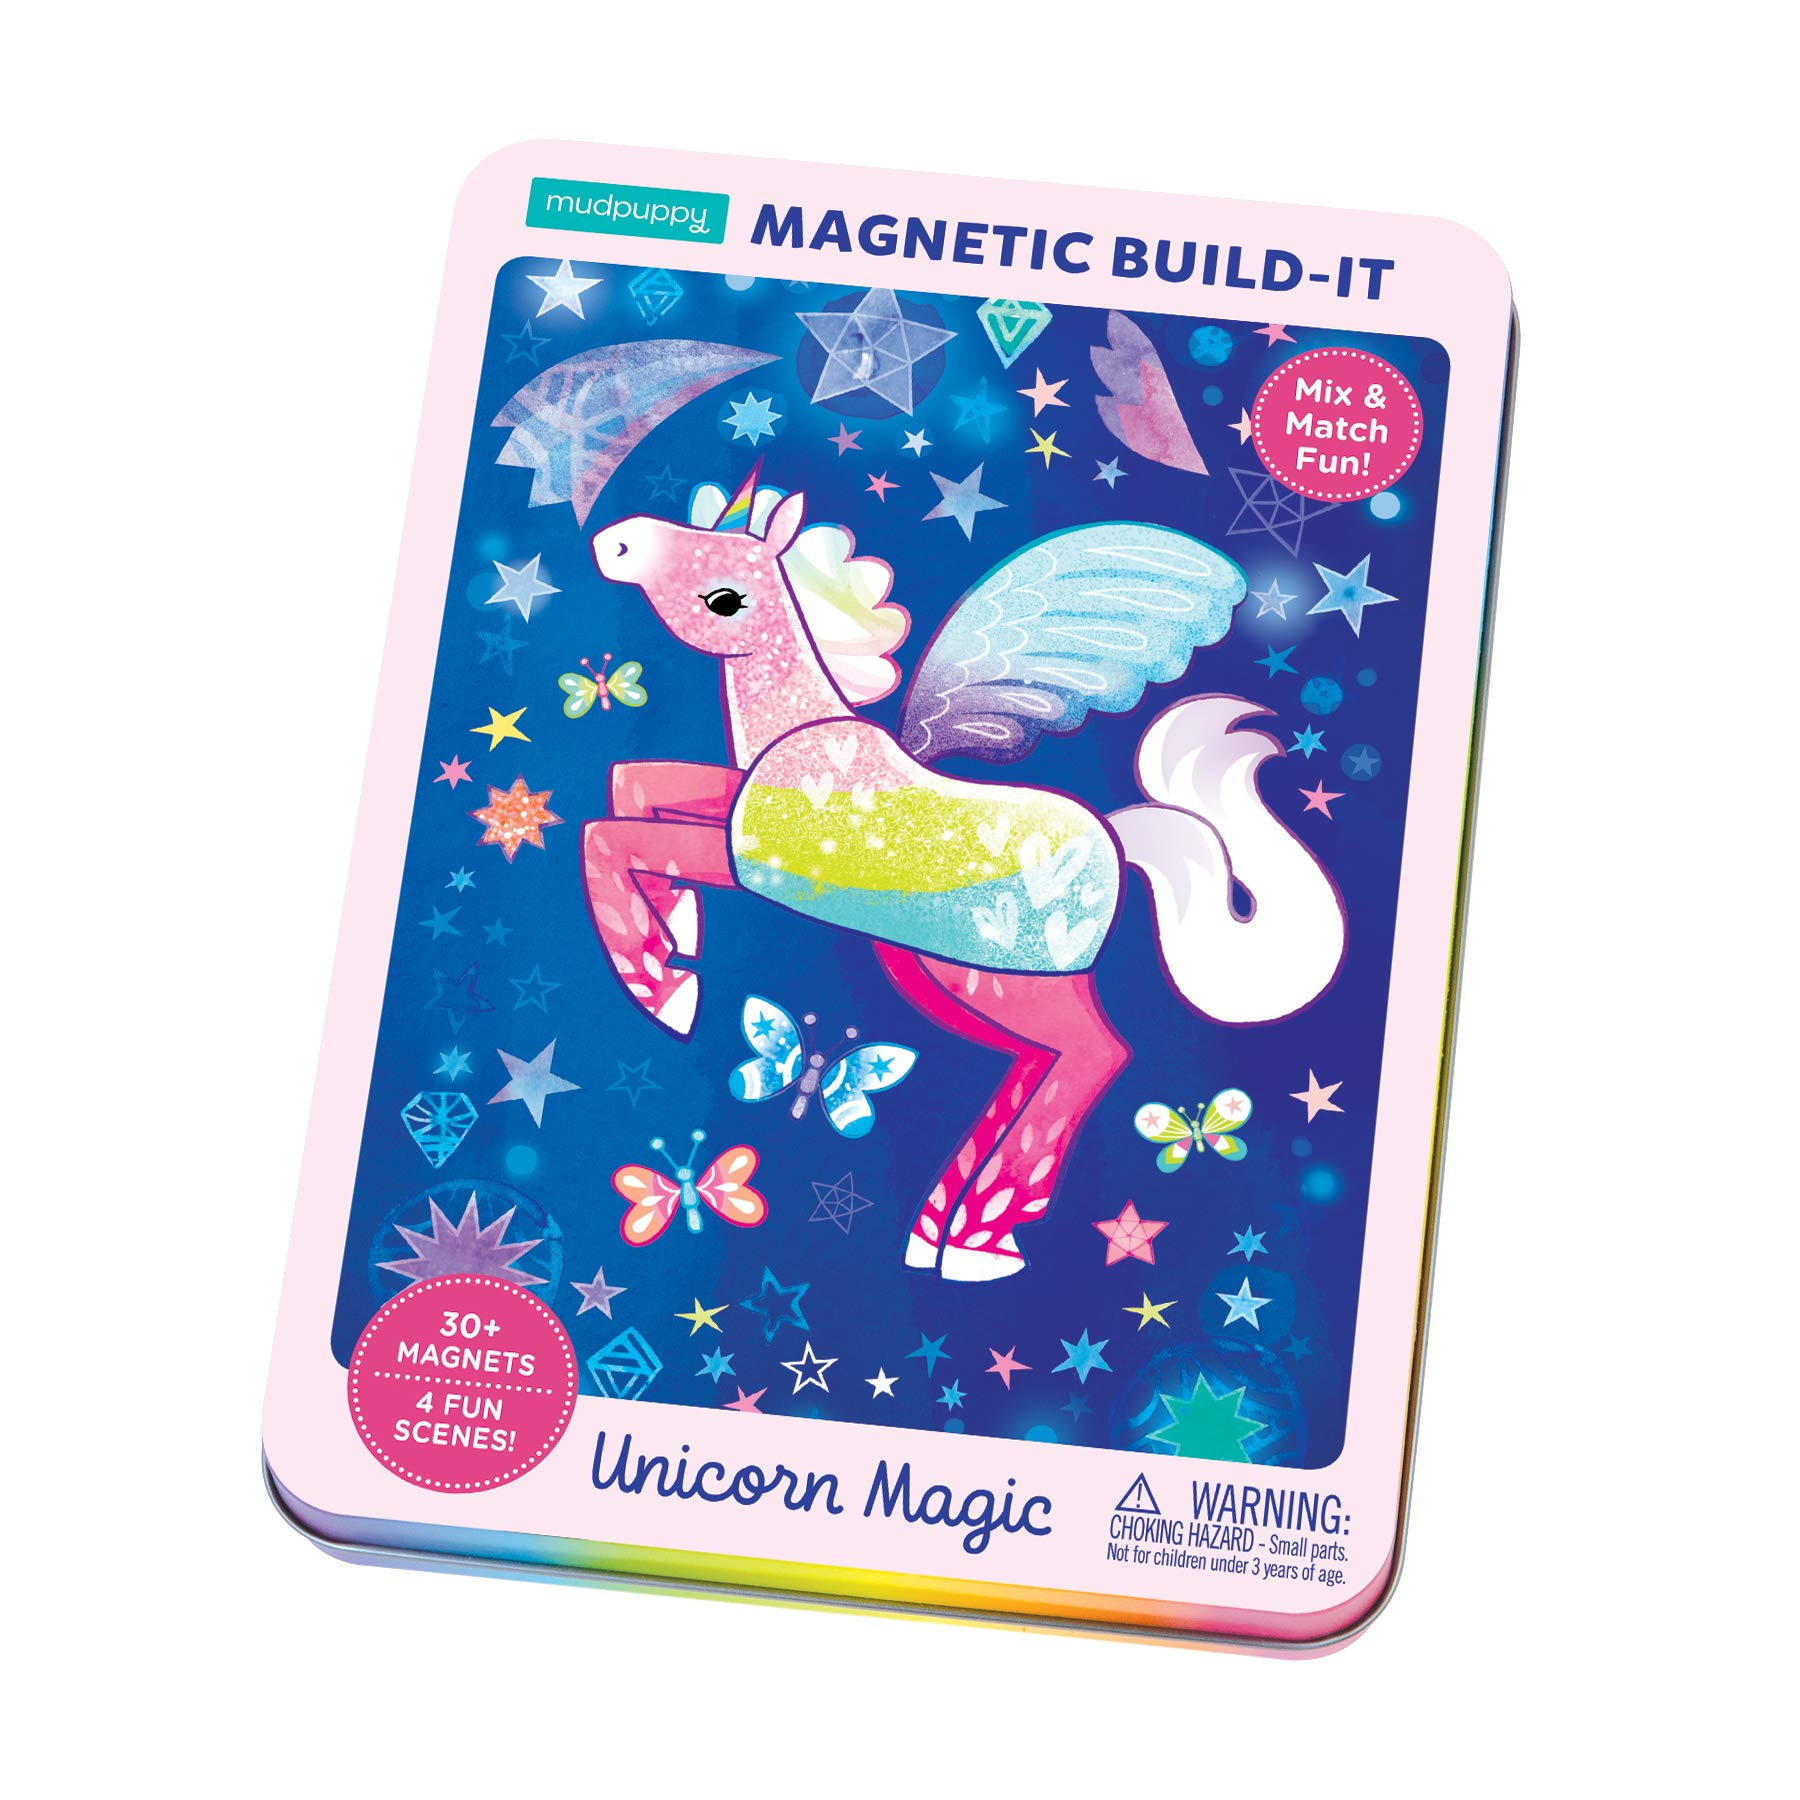 Mudpuppy Unicorn Magic Magnetic Build-It - Ages 4+ - Magnetic Play Set with 4 Backgrounds, 30+ Magnets - Unicorn Toy for Girls and Boys - Great for Travel, Quiet Time - Magnets Adhere to Tin Package